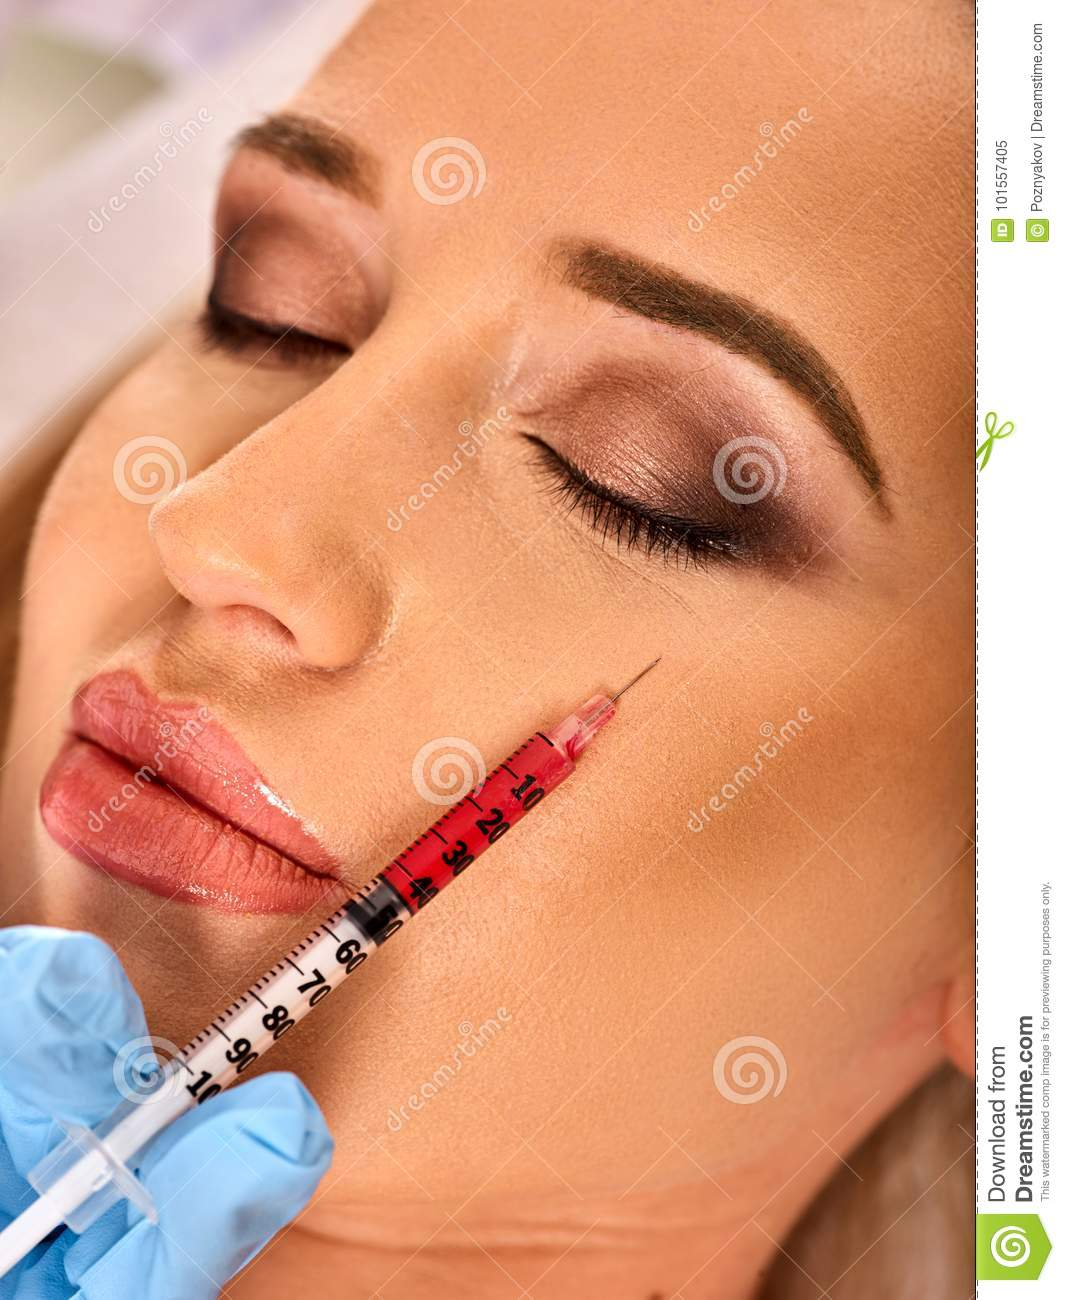 Dermal Fillers Of Woman In Spa Salon With Beautician  Stock